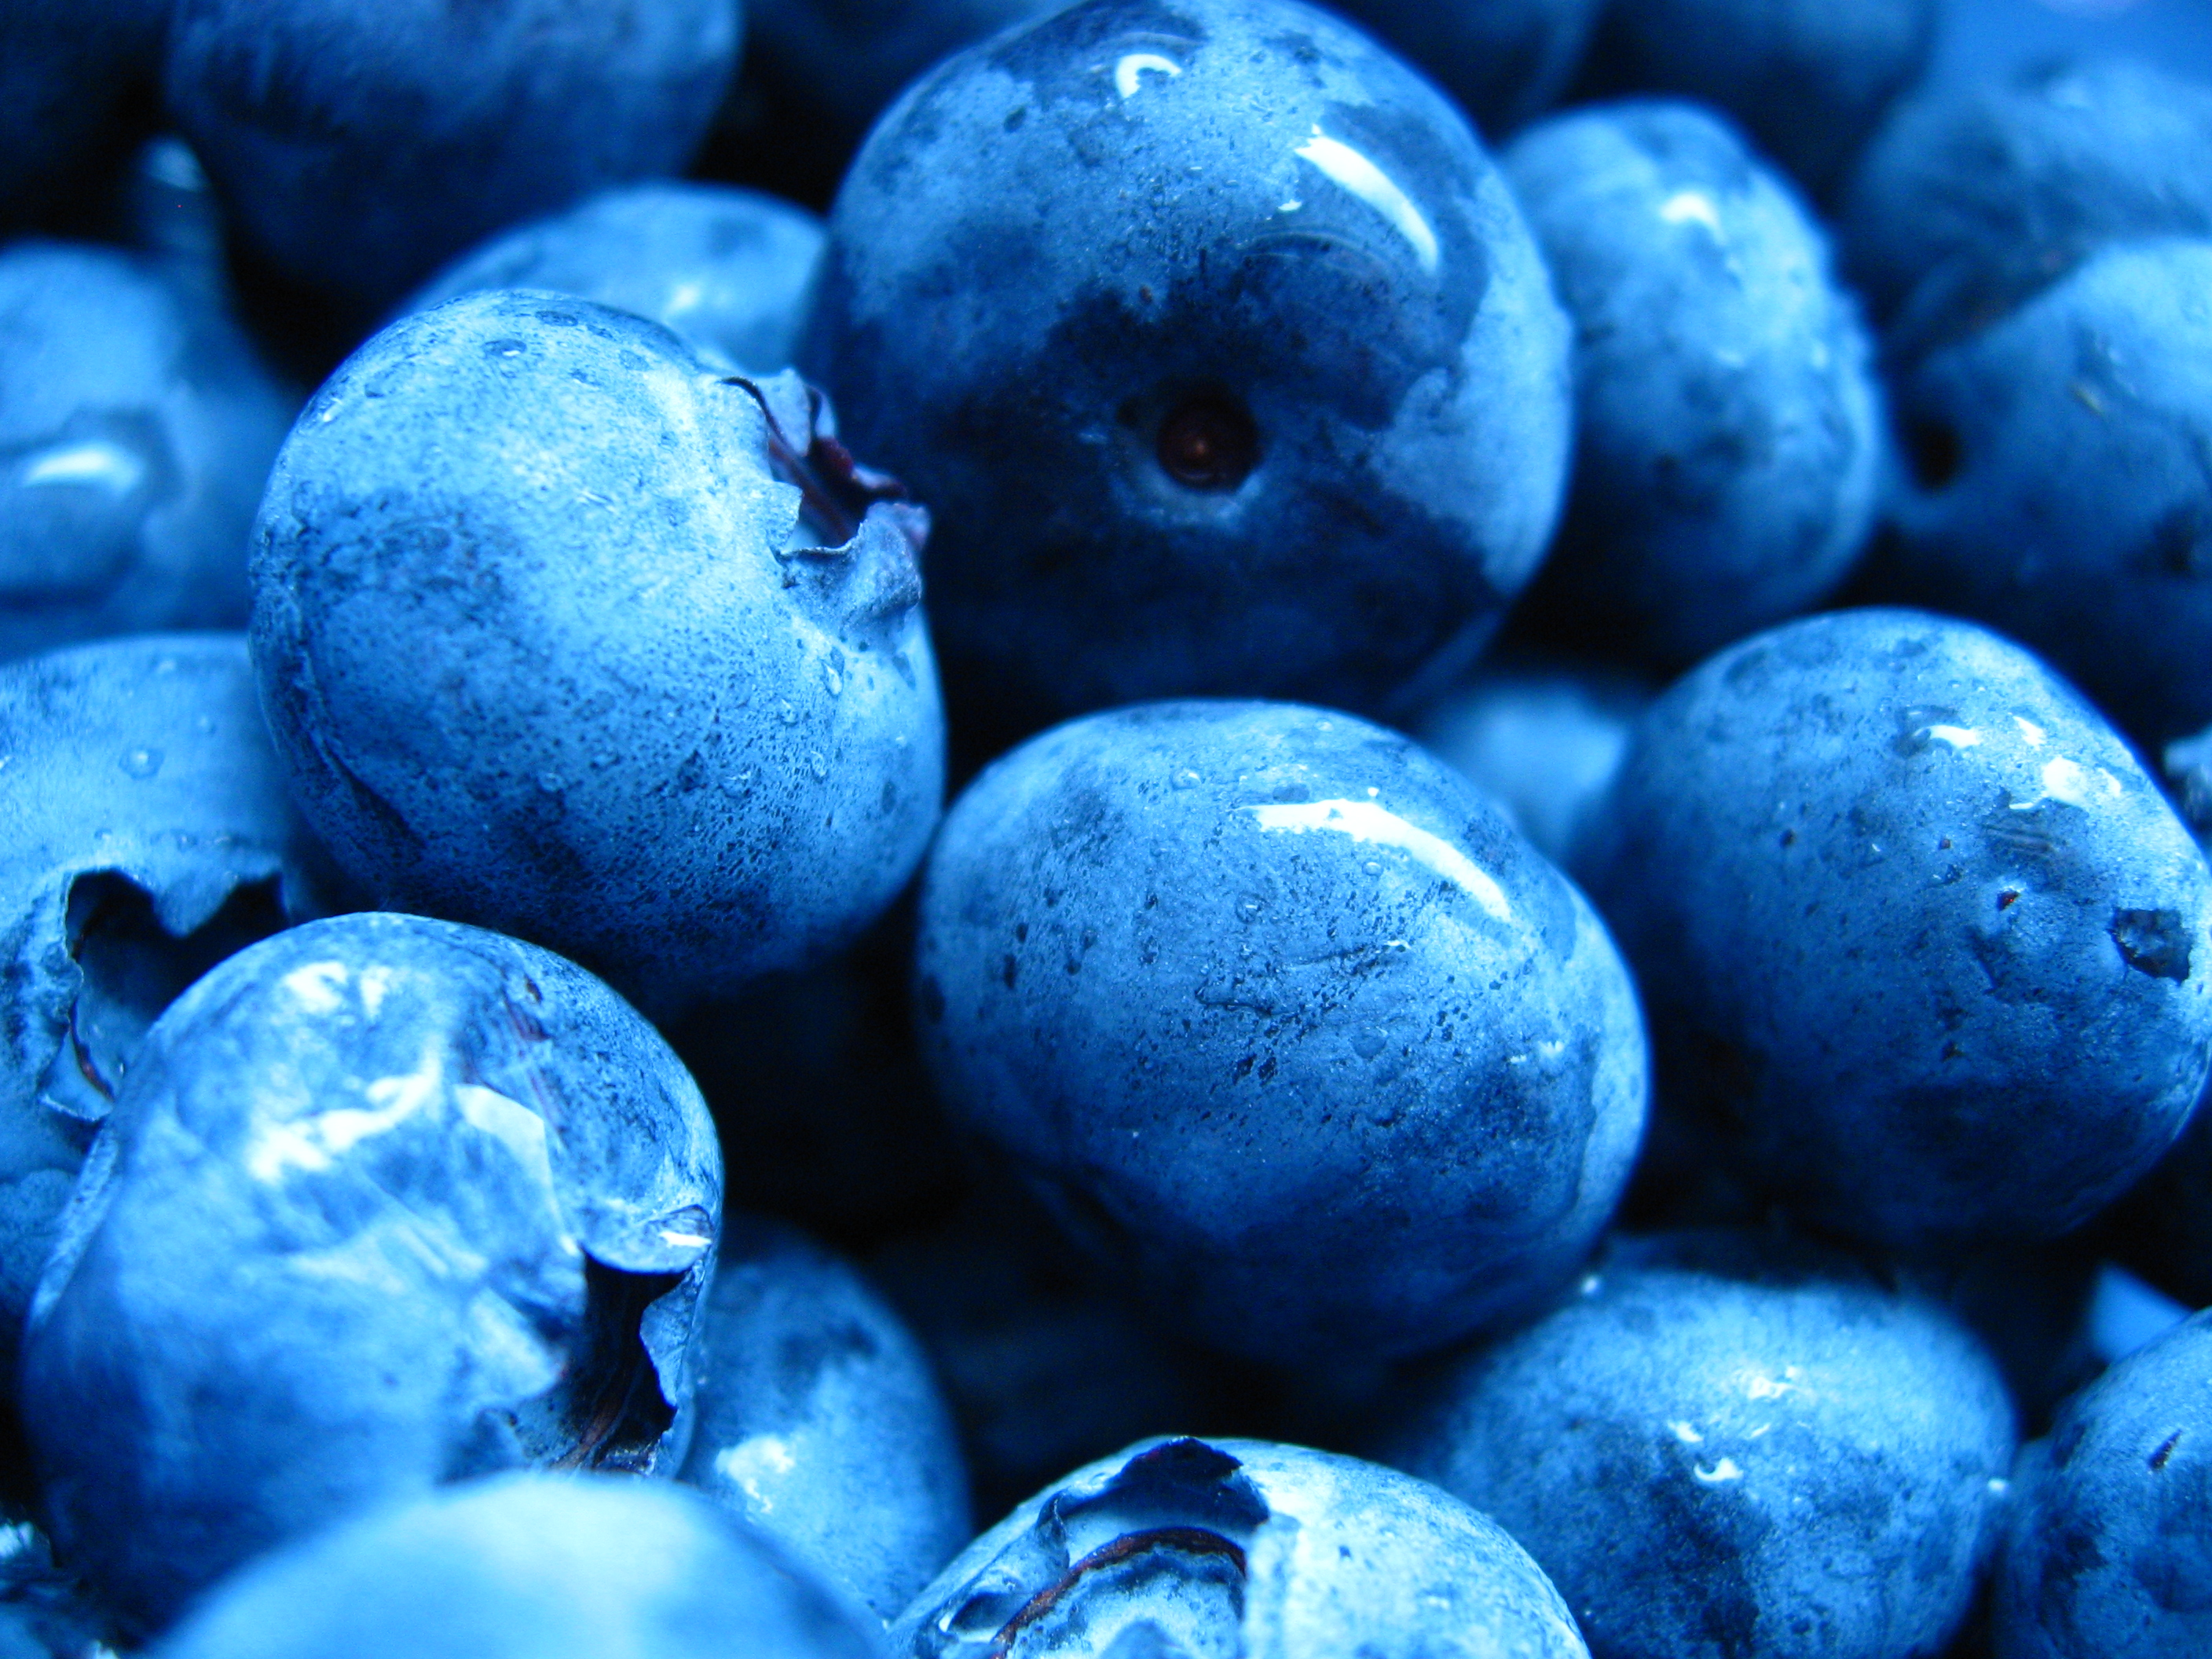 Blueberry - Fruit Photo (34733368) - Fanpop